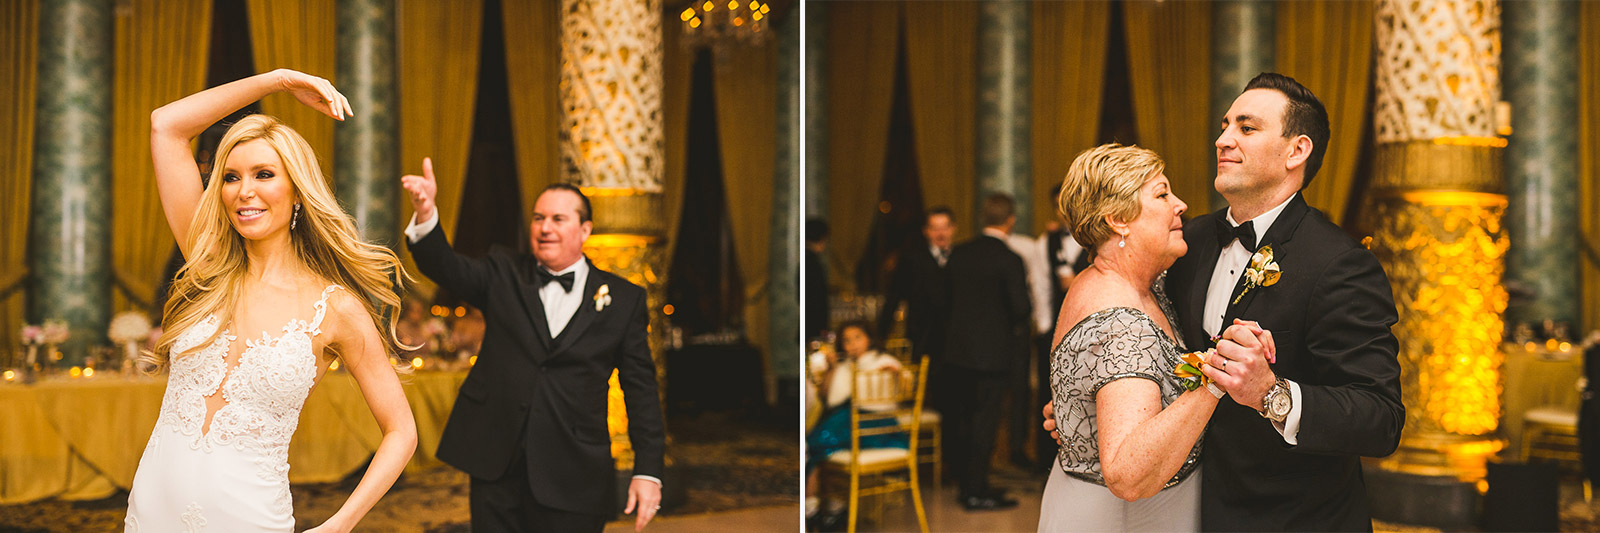 63 parents first dances - Kayla + Terry // Drake Hotel Chicago Wedding Photos